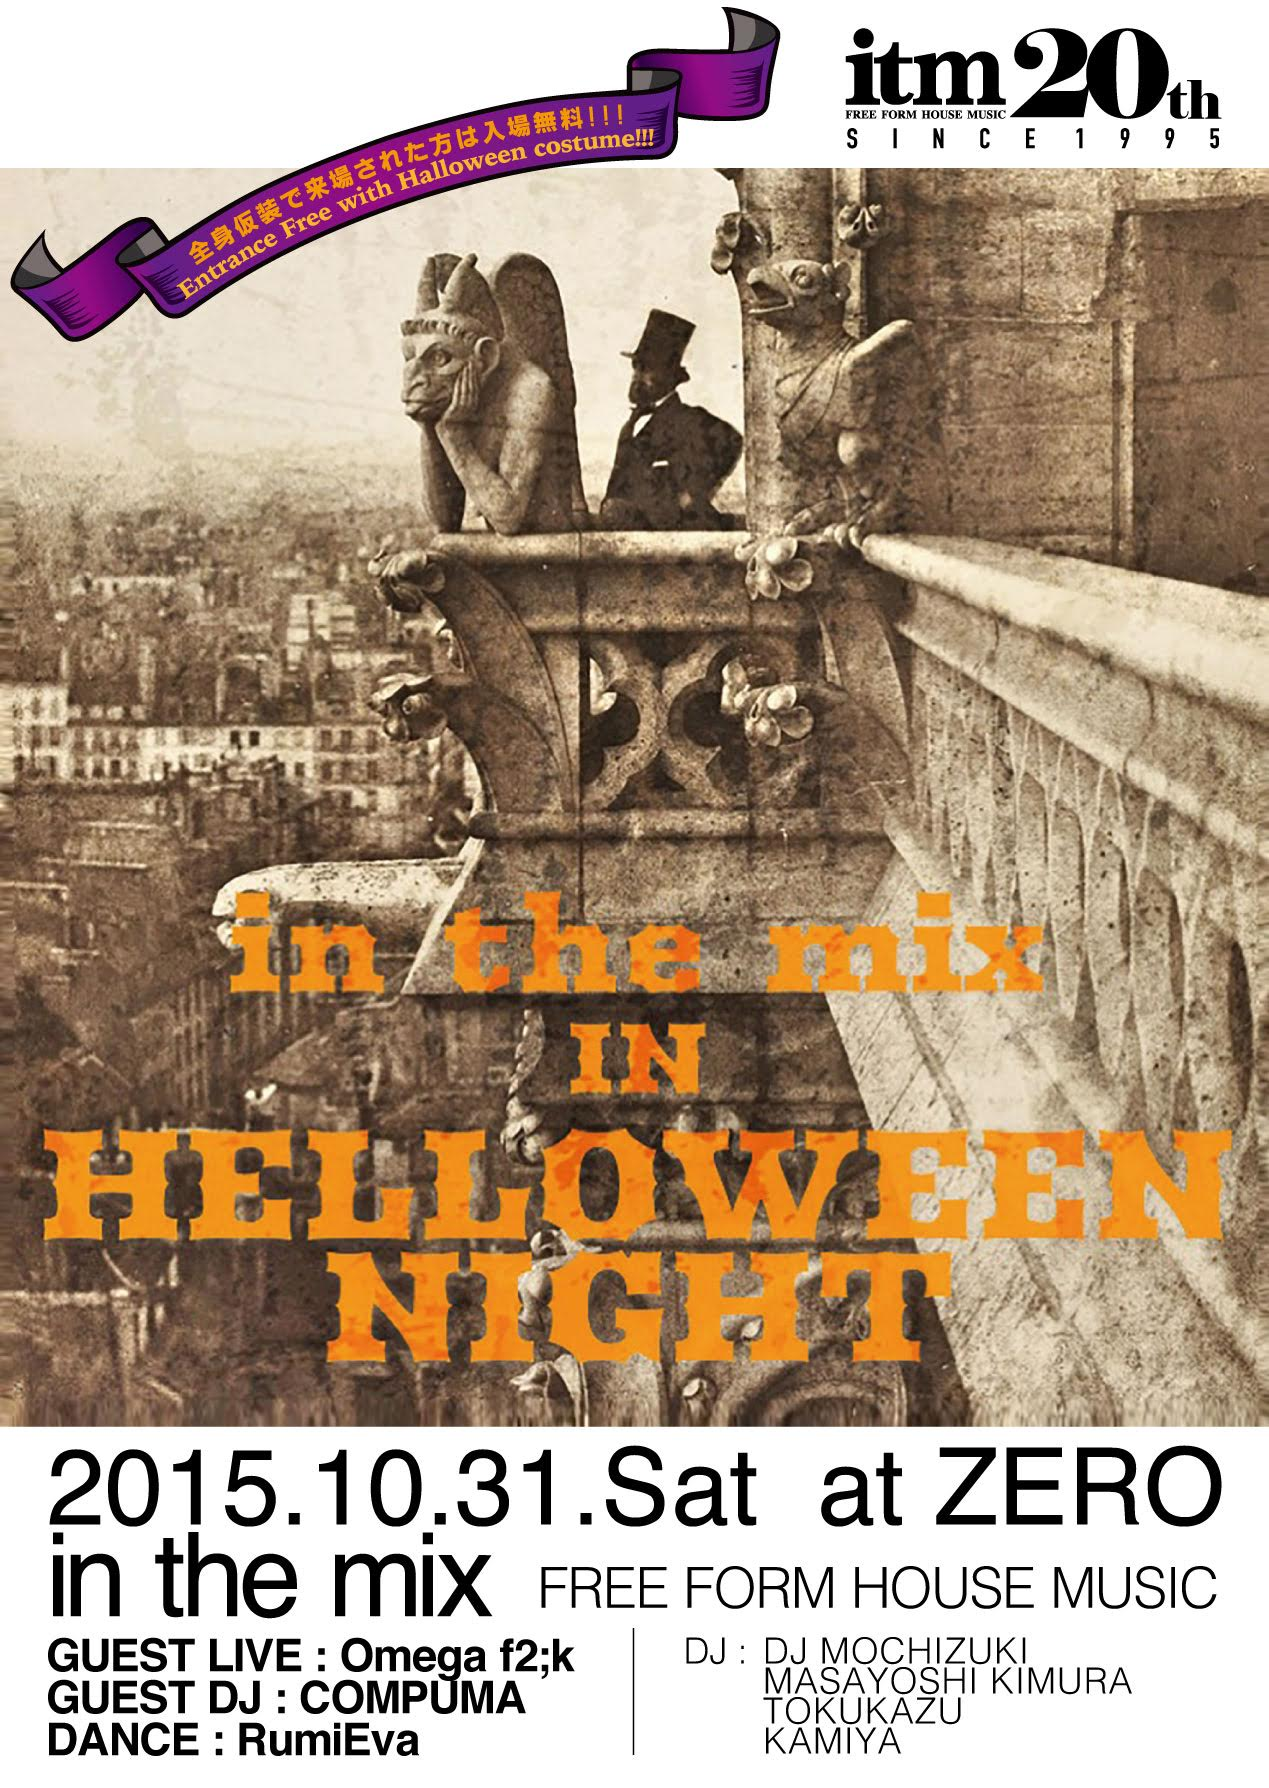 in the mix in HELLOWEEN NIGHT